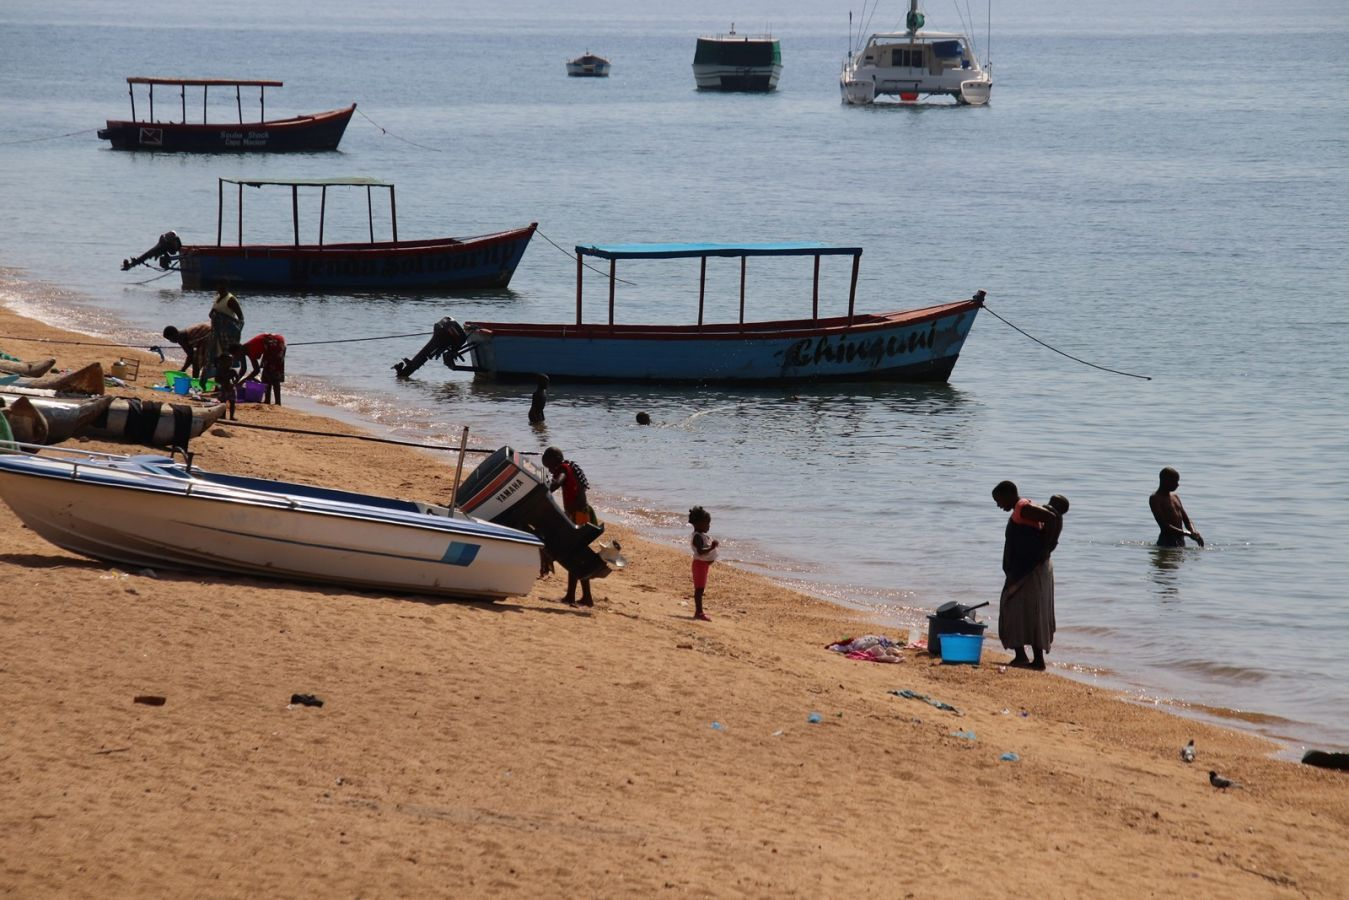 Lake Malawi strand met vissersboten - ©Fair Mundo Travel